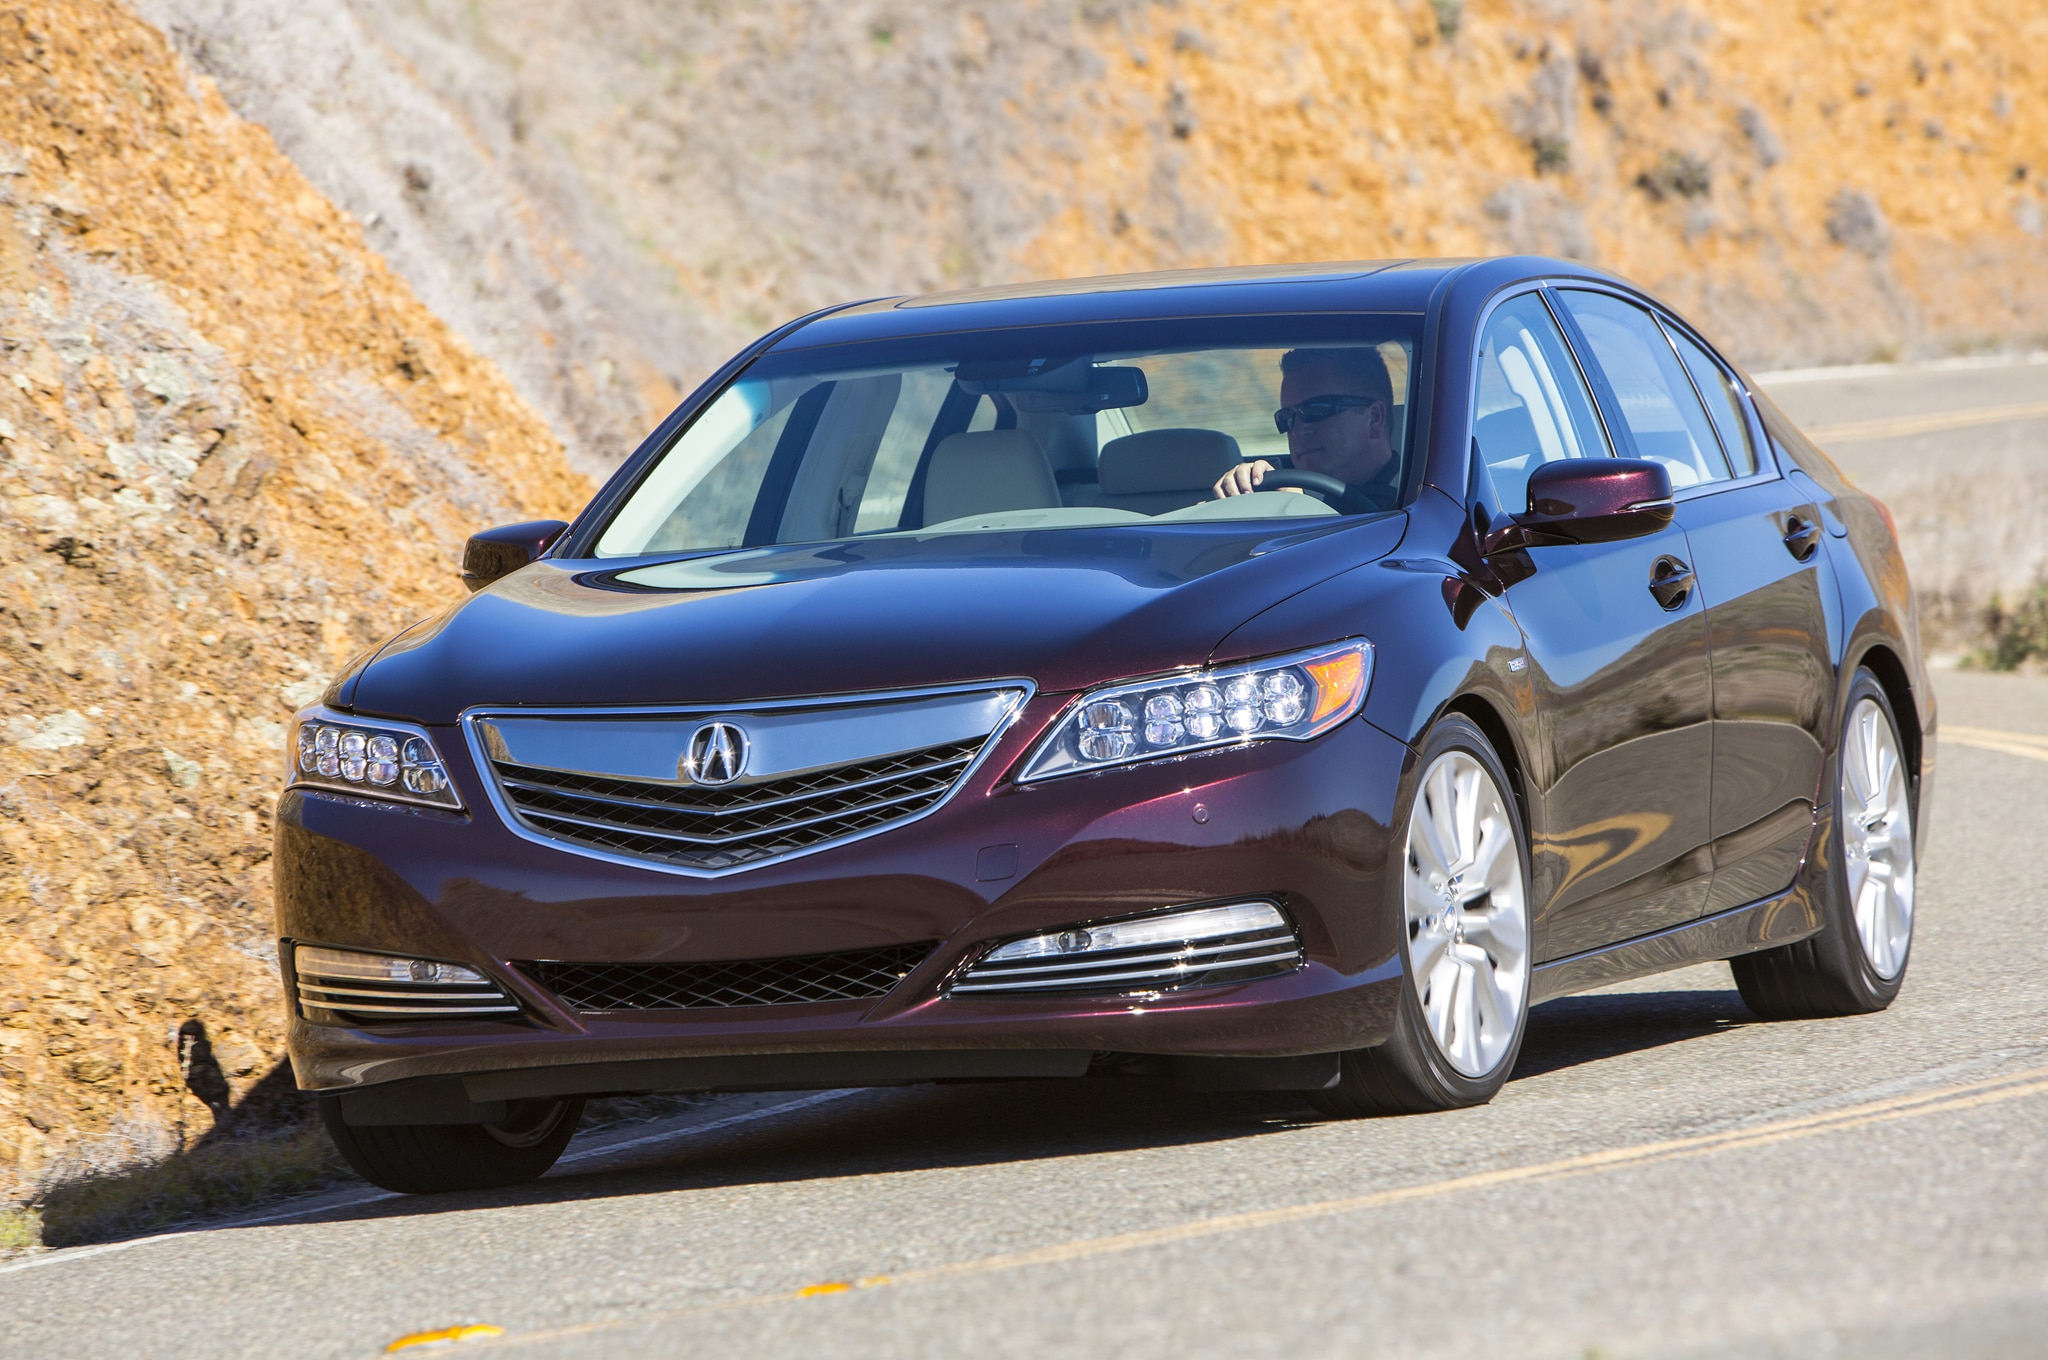 used cars sale parts cargurus inspirational of acura for rlx rl awesome